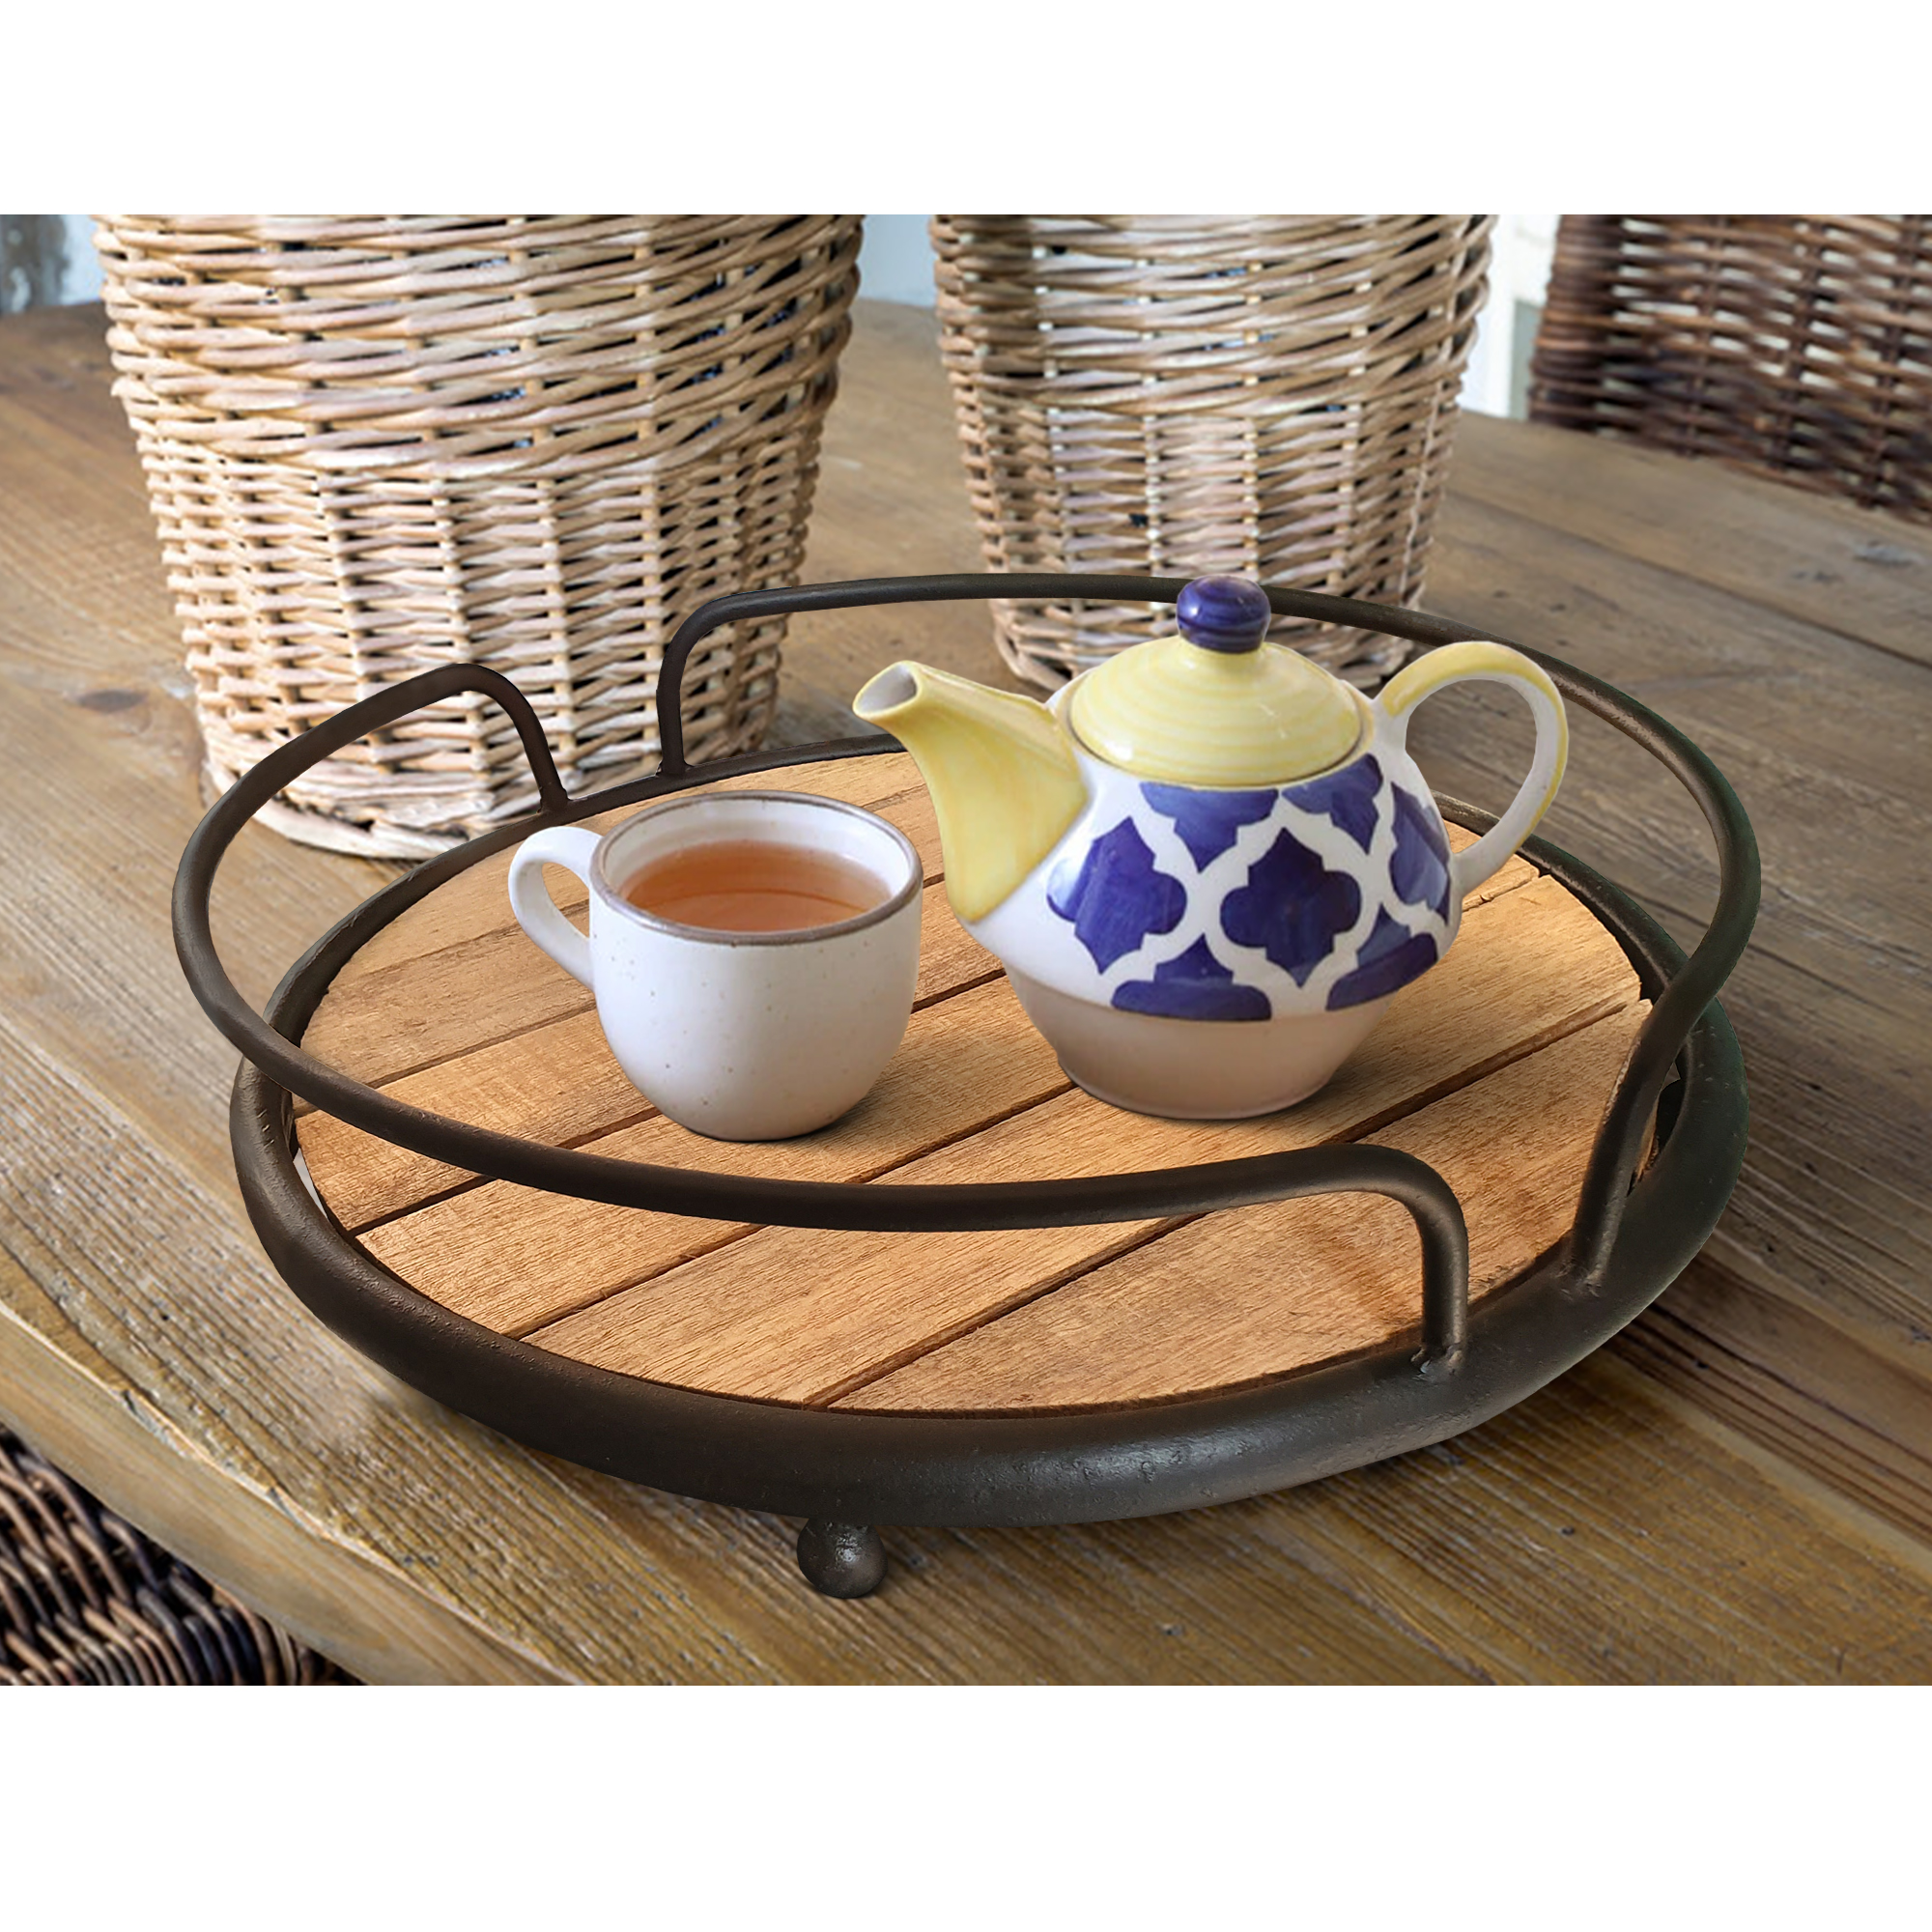 Round Serving Tray Tubular Metal Frame Plank Style Wooden Base, Brown And Black